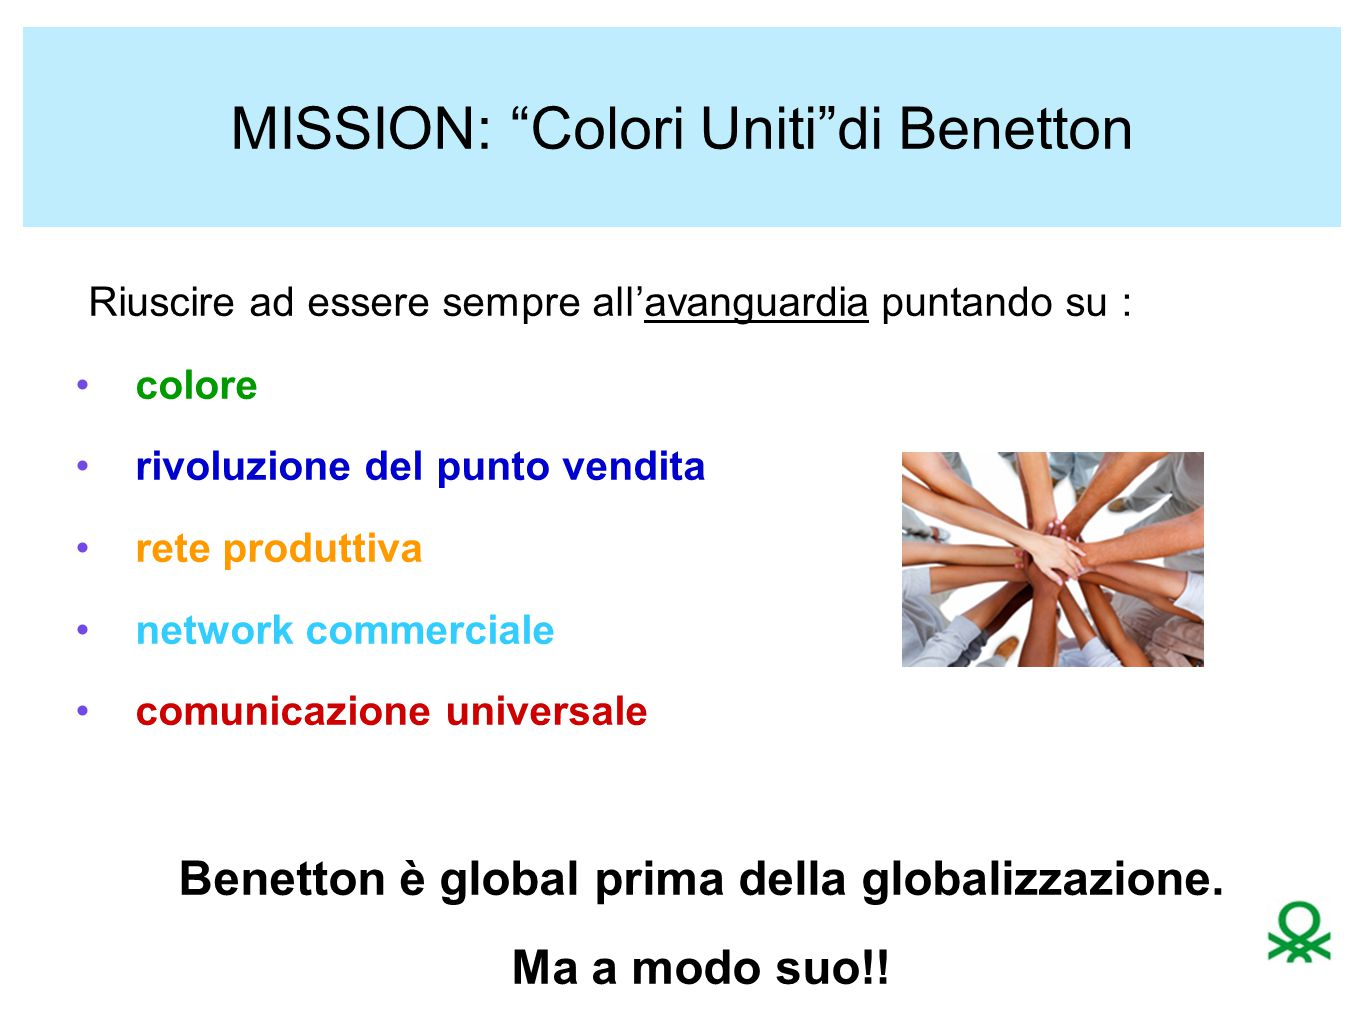 MISSION: Colori Uniti di Benetton